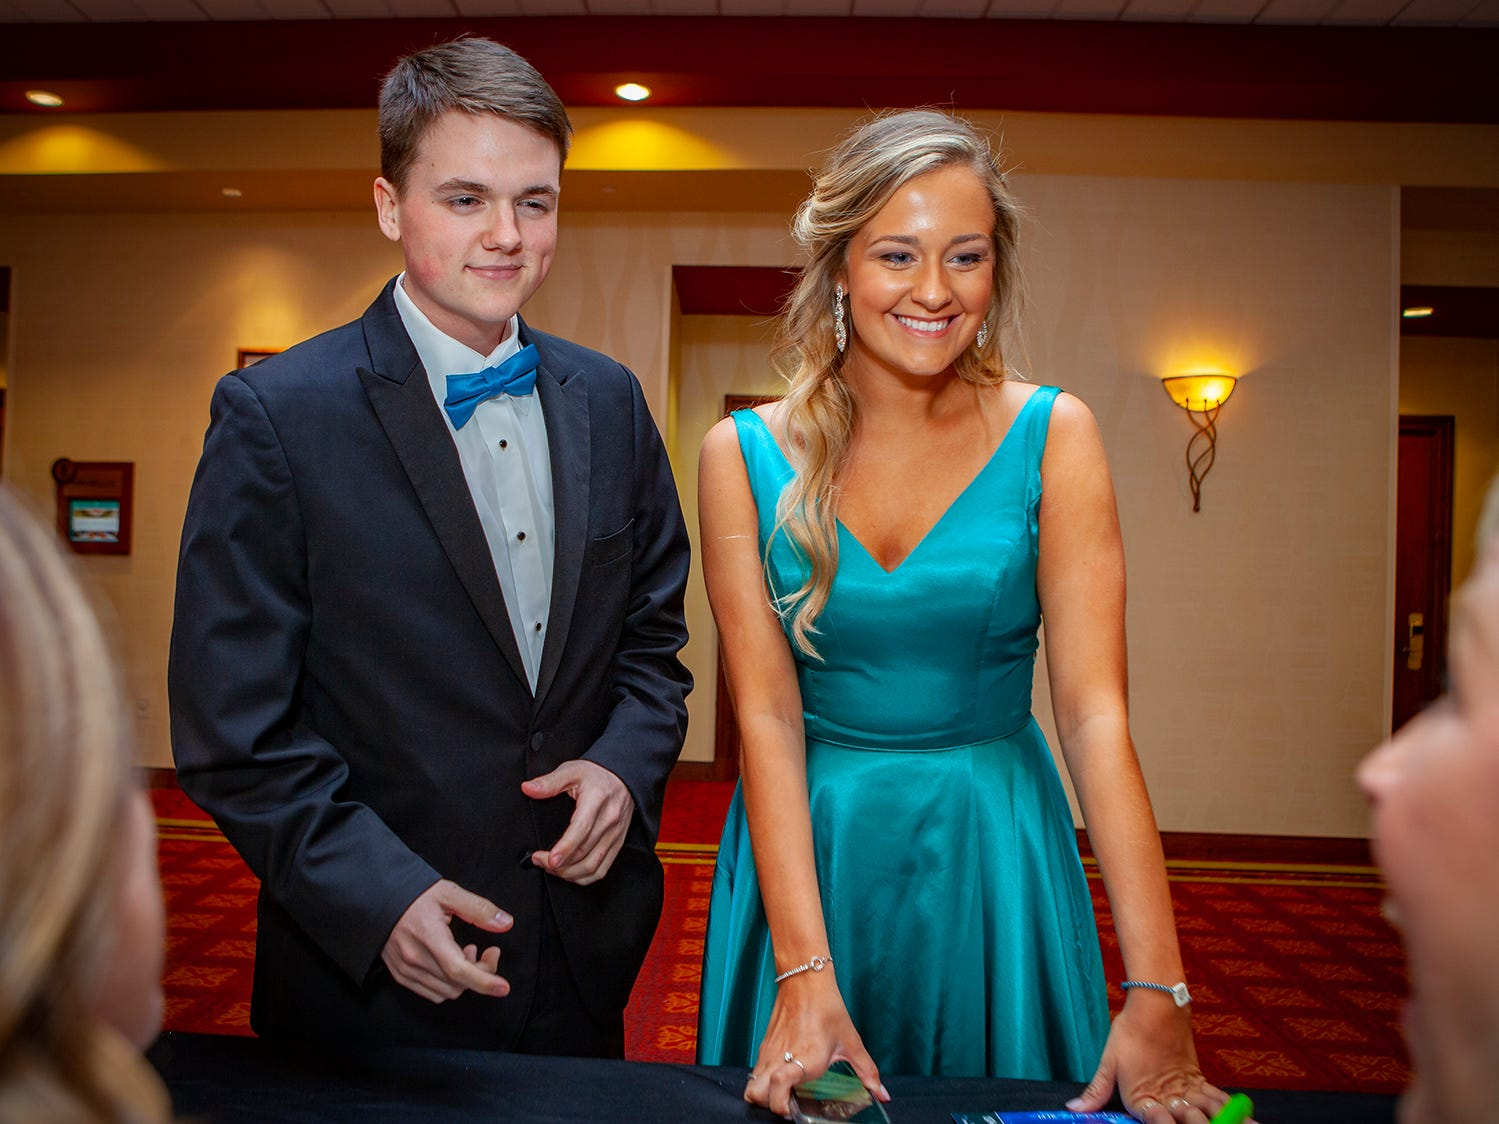 Carson Foster and Makenna Miller check in at Central Magnet School's prom on Saturday, April 6 at Embassy Suites in Murfreesboro.